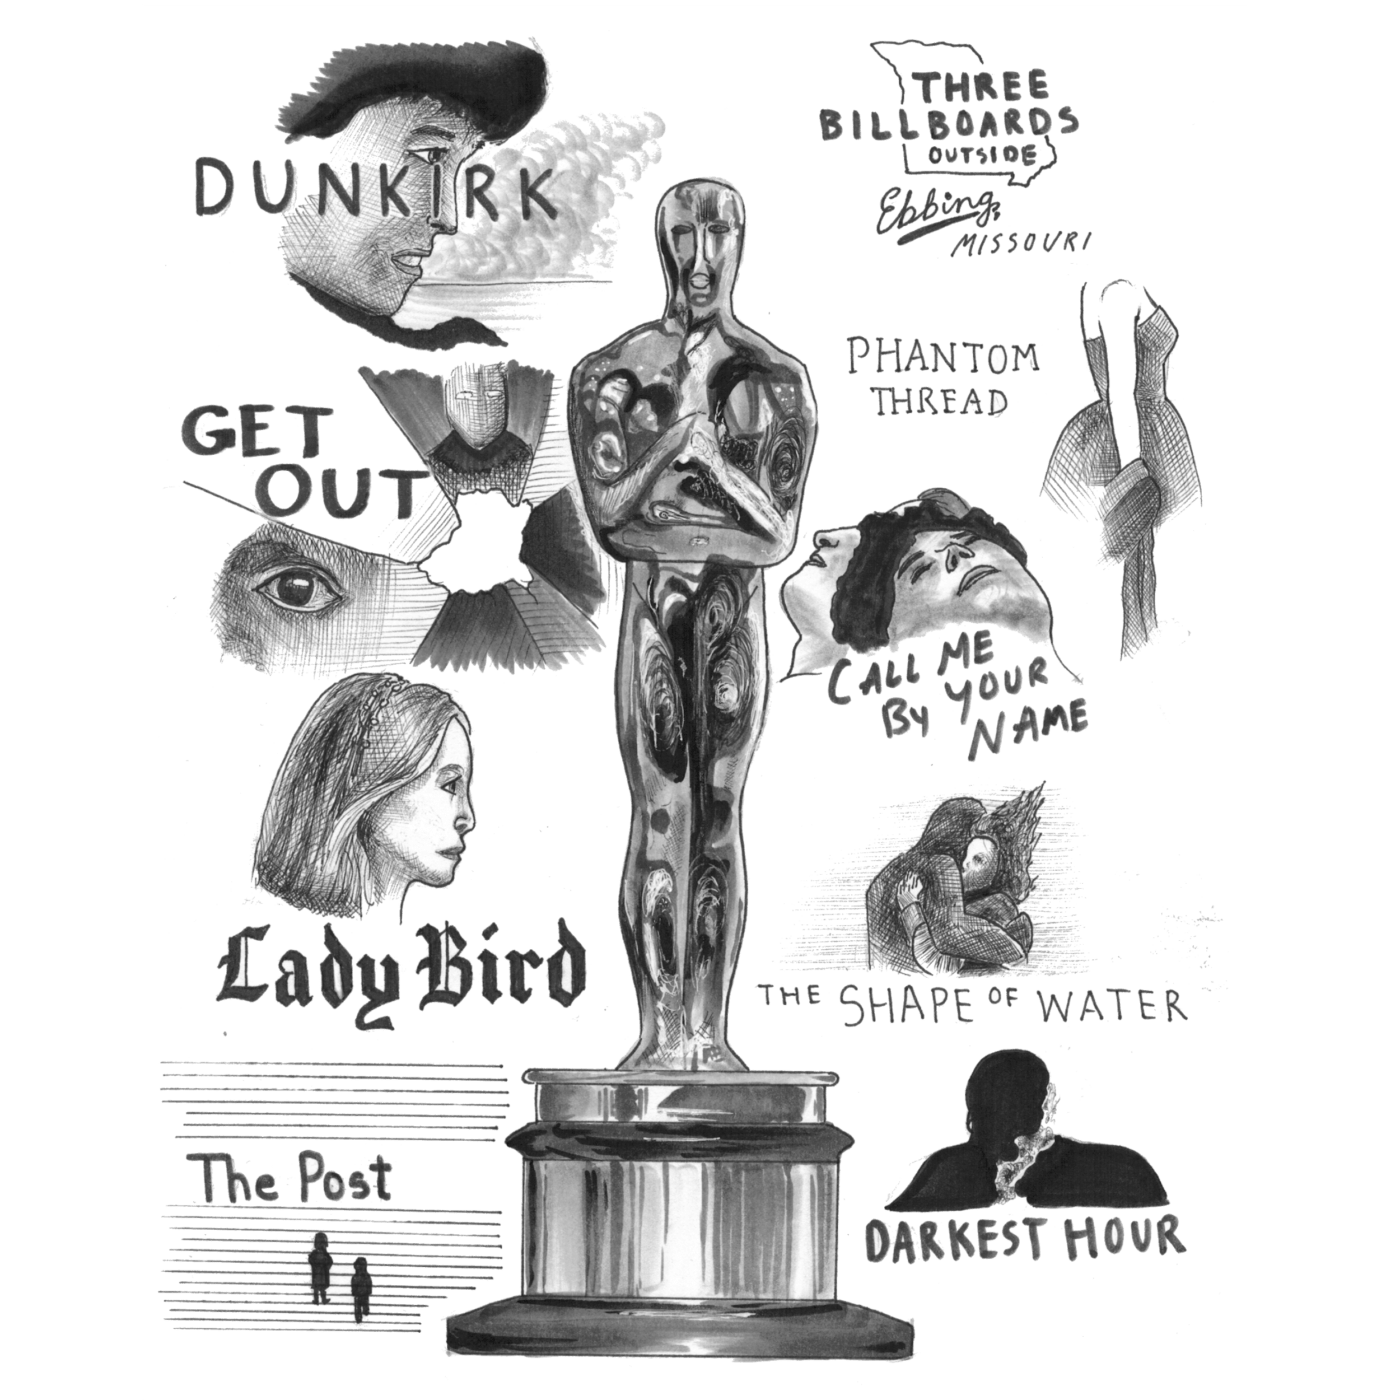 Graphic by  John Liang via The Tower (https://thetowerphs.com/2018/02/arts-and-entertainment/the-oscars-2018-who-will-take-the-win/)